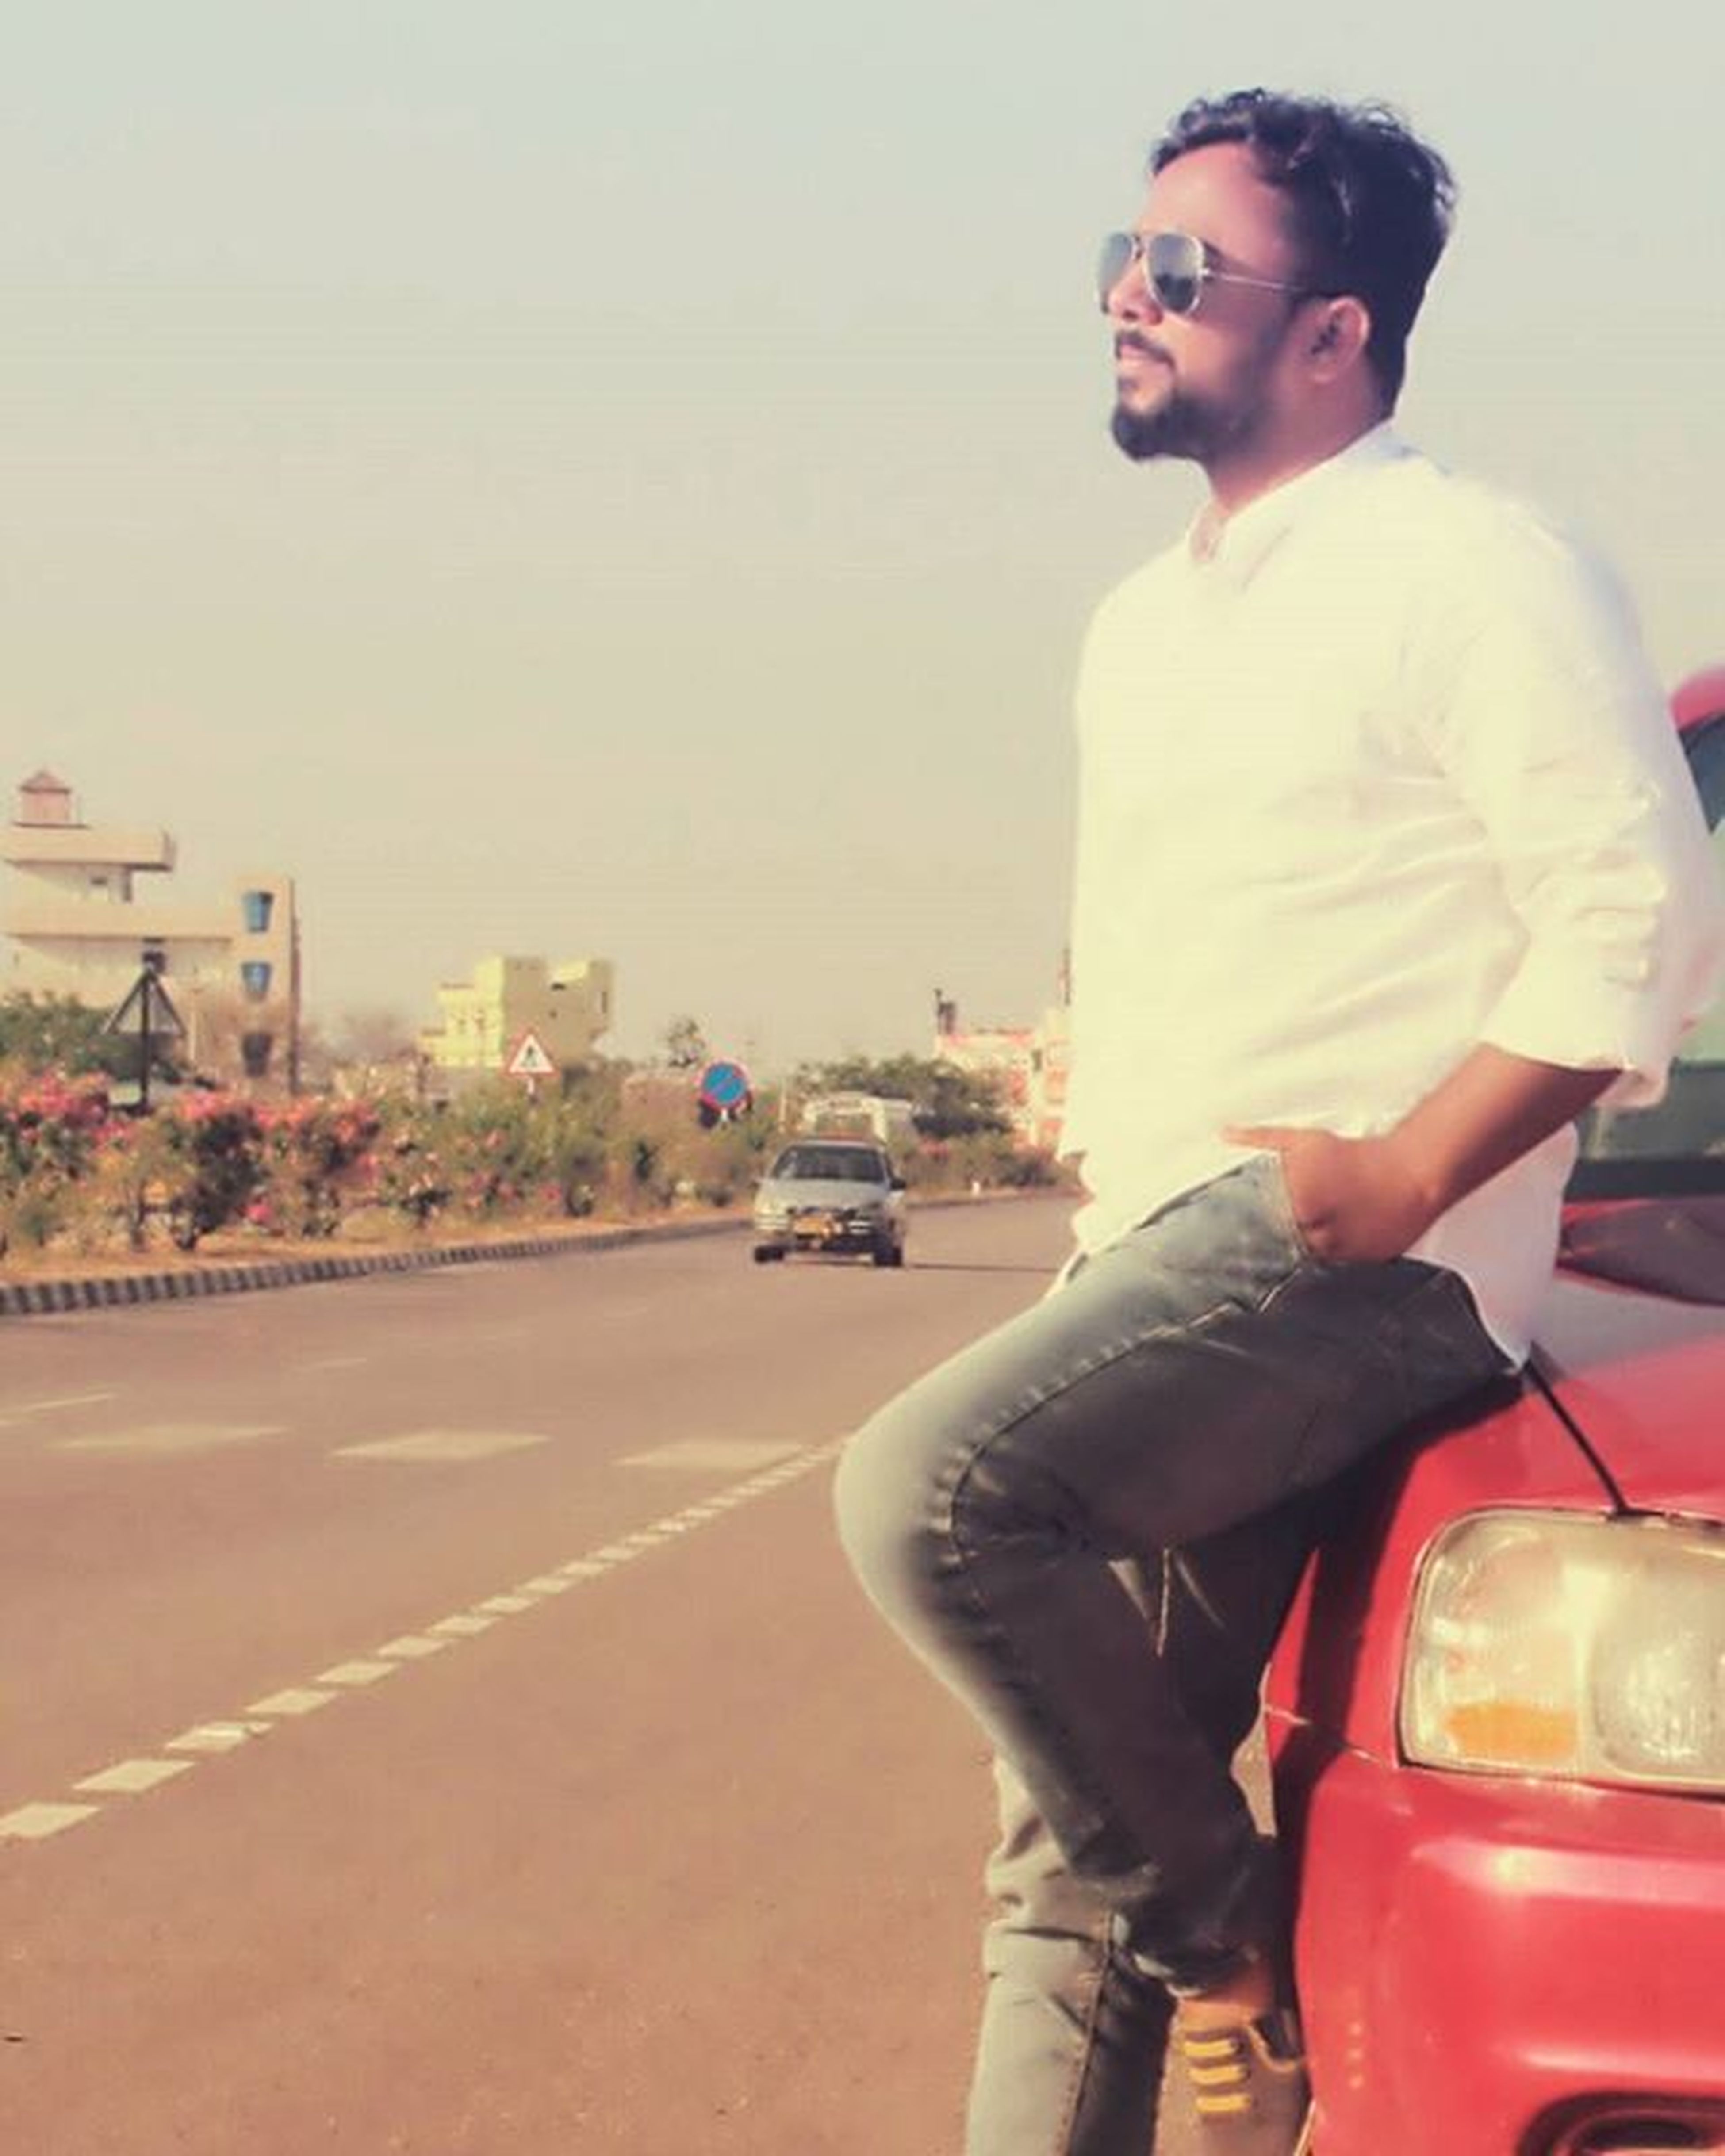 I ONLY RIDE WITH...WHO I'VE WALKED WITH...... Photographie  Photo4Like Hyderabaddiaries Beinghyderabadi Photooftheday Ride Longride Longdrive Friendship Friendstime Instafollow Like4like Follow4follow Followme On The Way